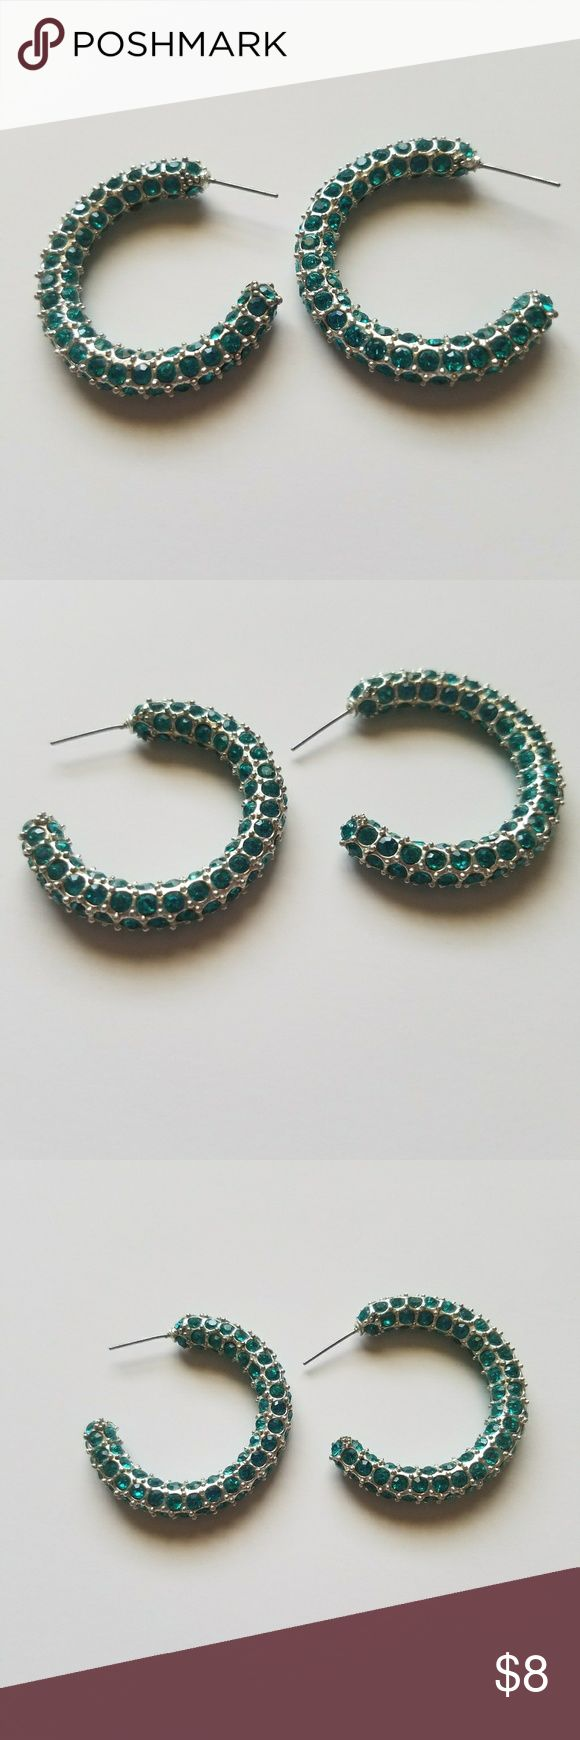 💎Sparkling💎 Blue Hoop Earrings Traci Lynn hoop earrings...good condition Traci Lynn Jewelry Earrings